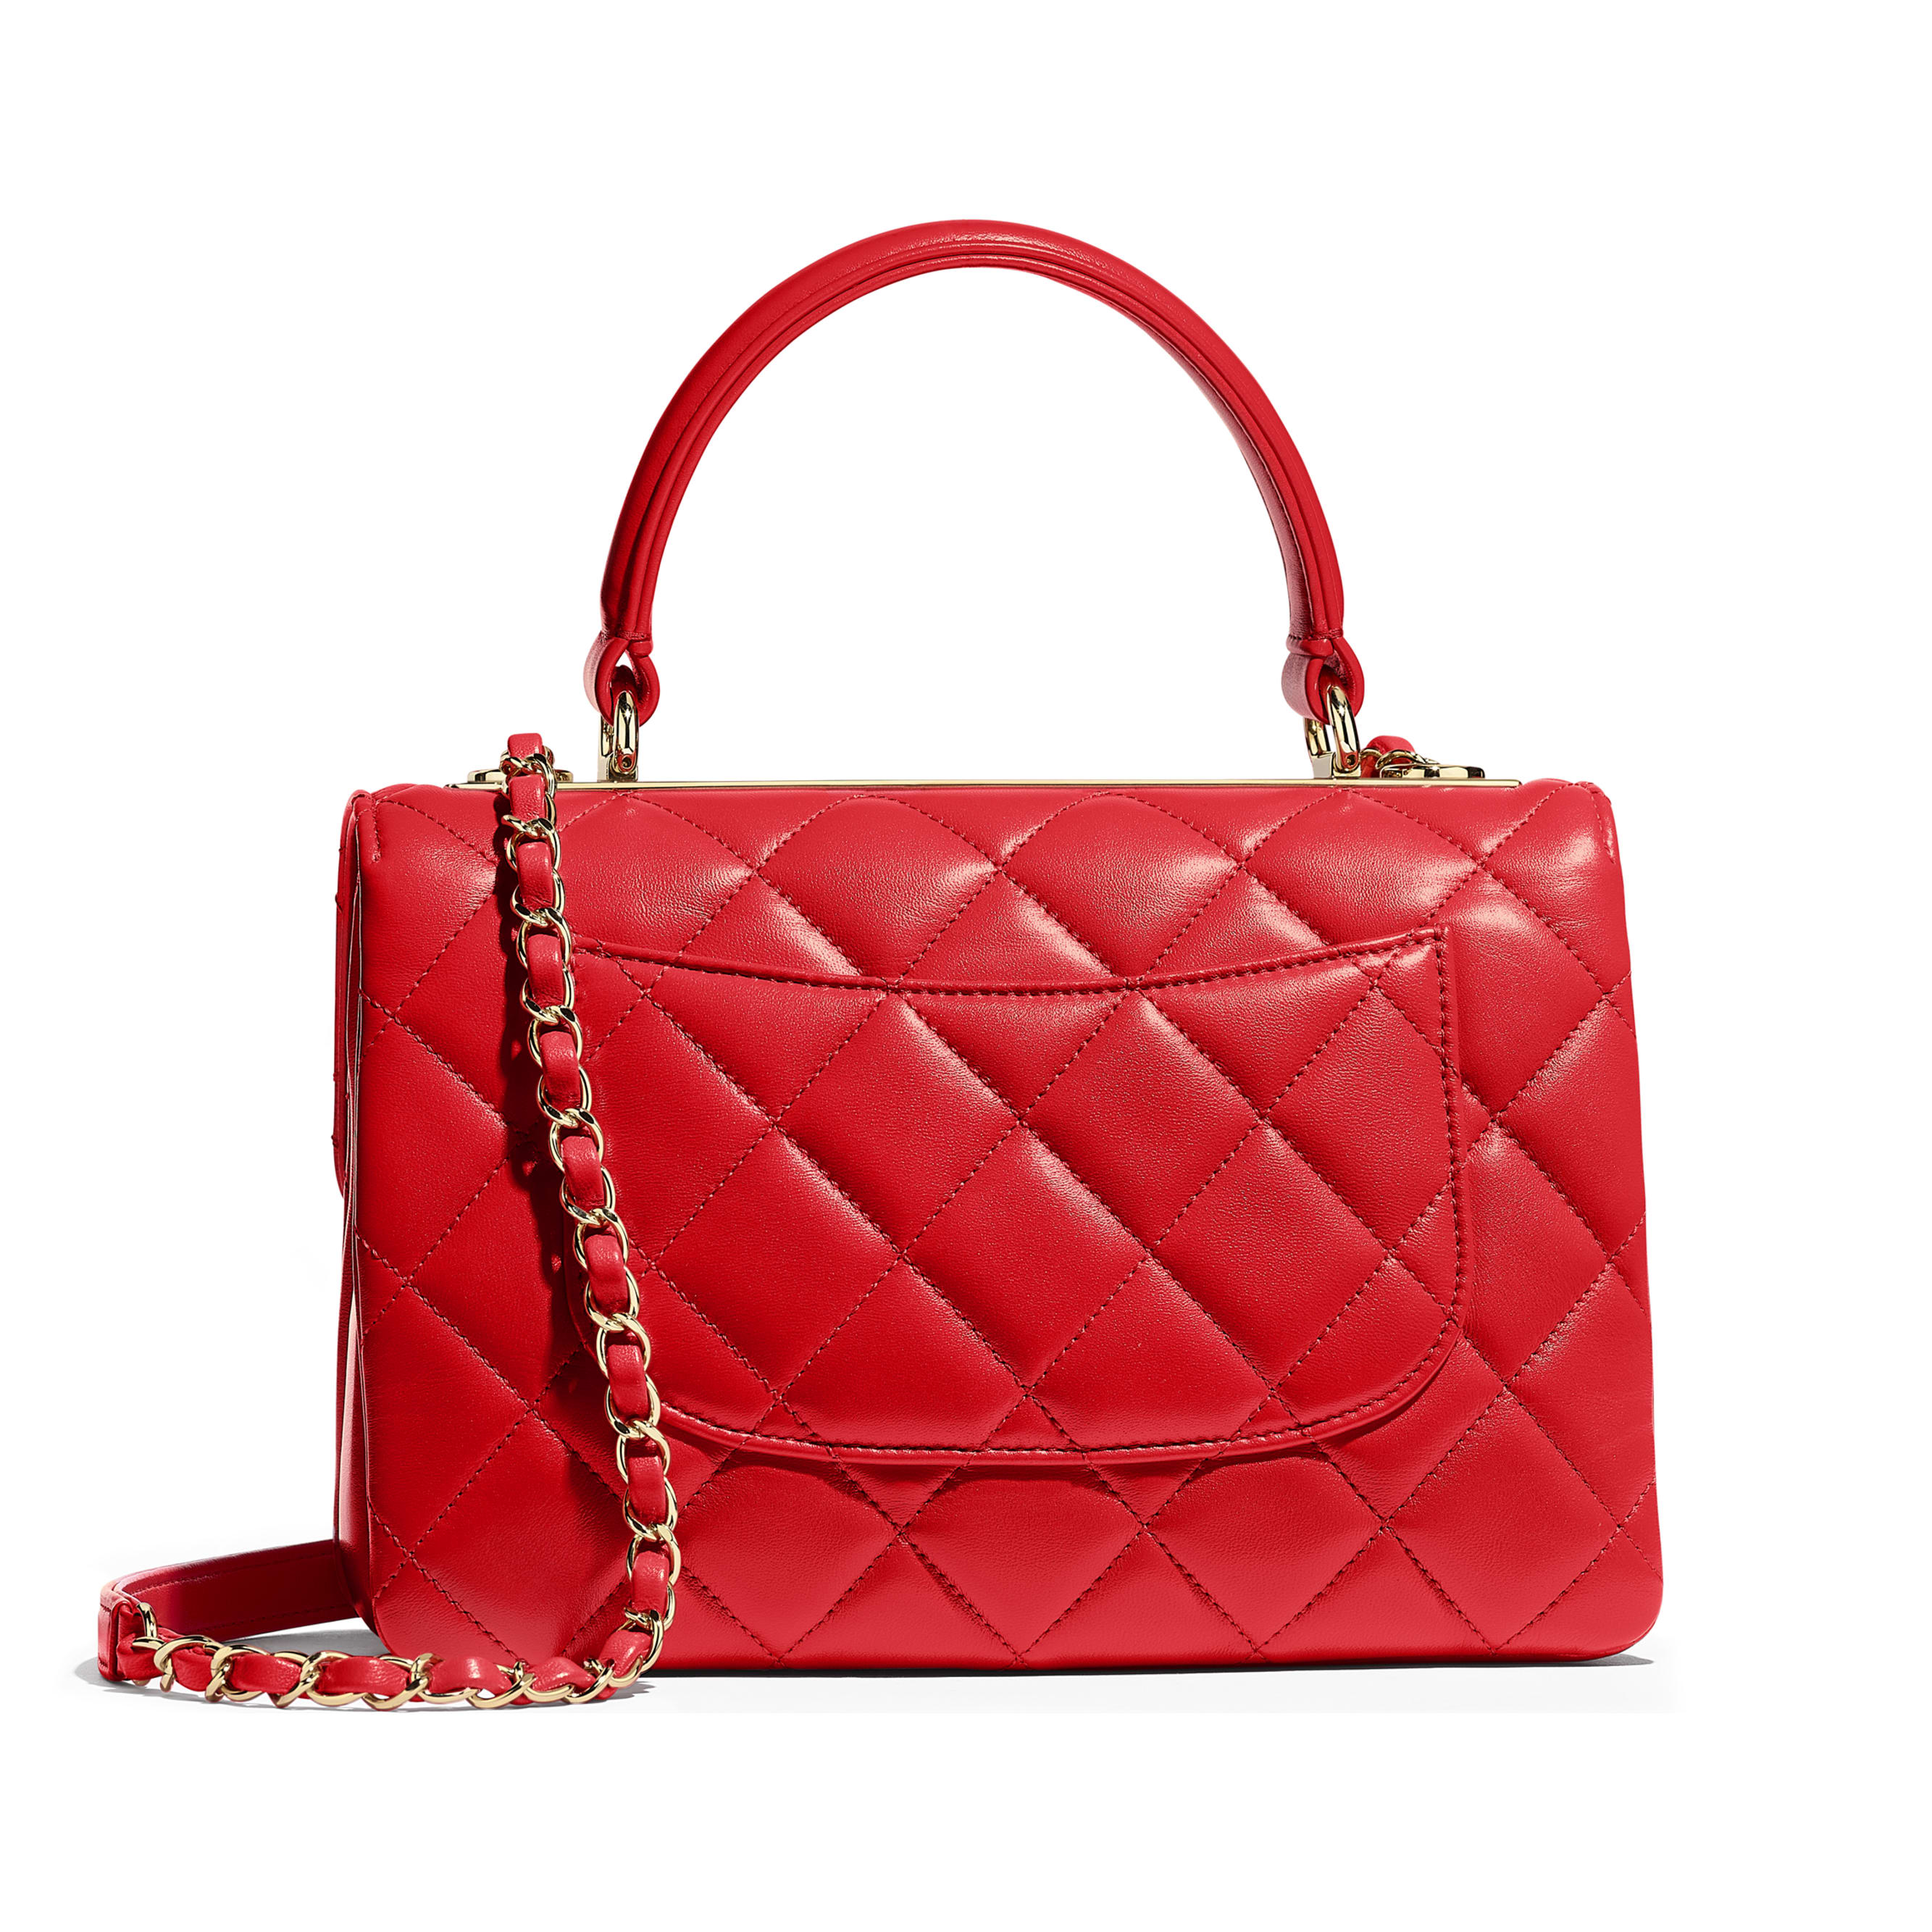 Small Flap Bag with Top Handle - Red - Lambskin & Gold-Tone Metal - Alternative view - see standard sized version